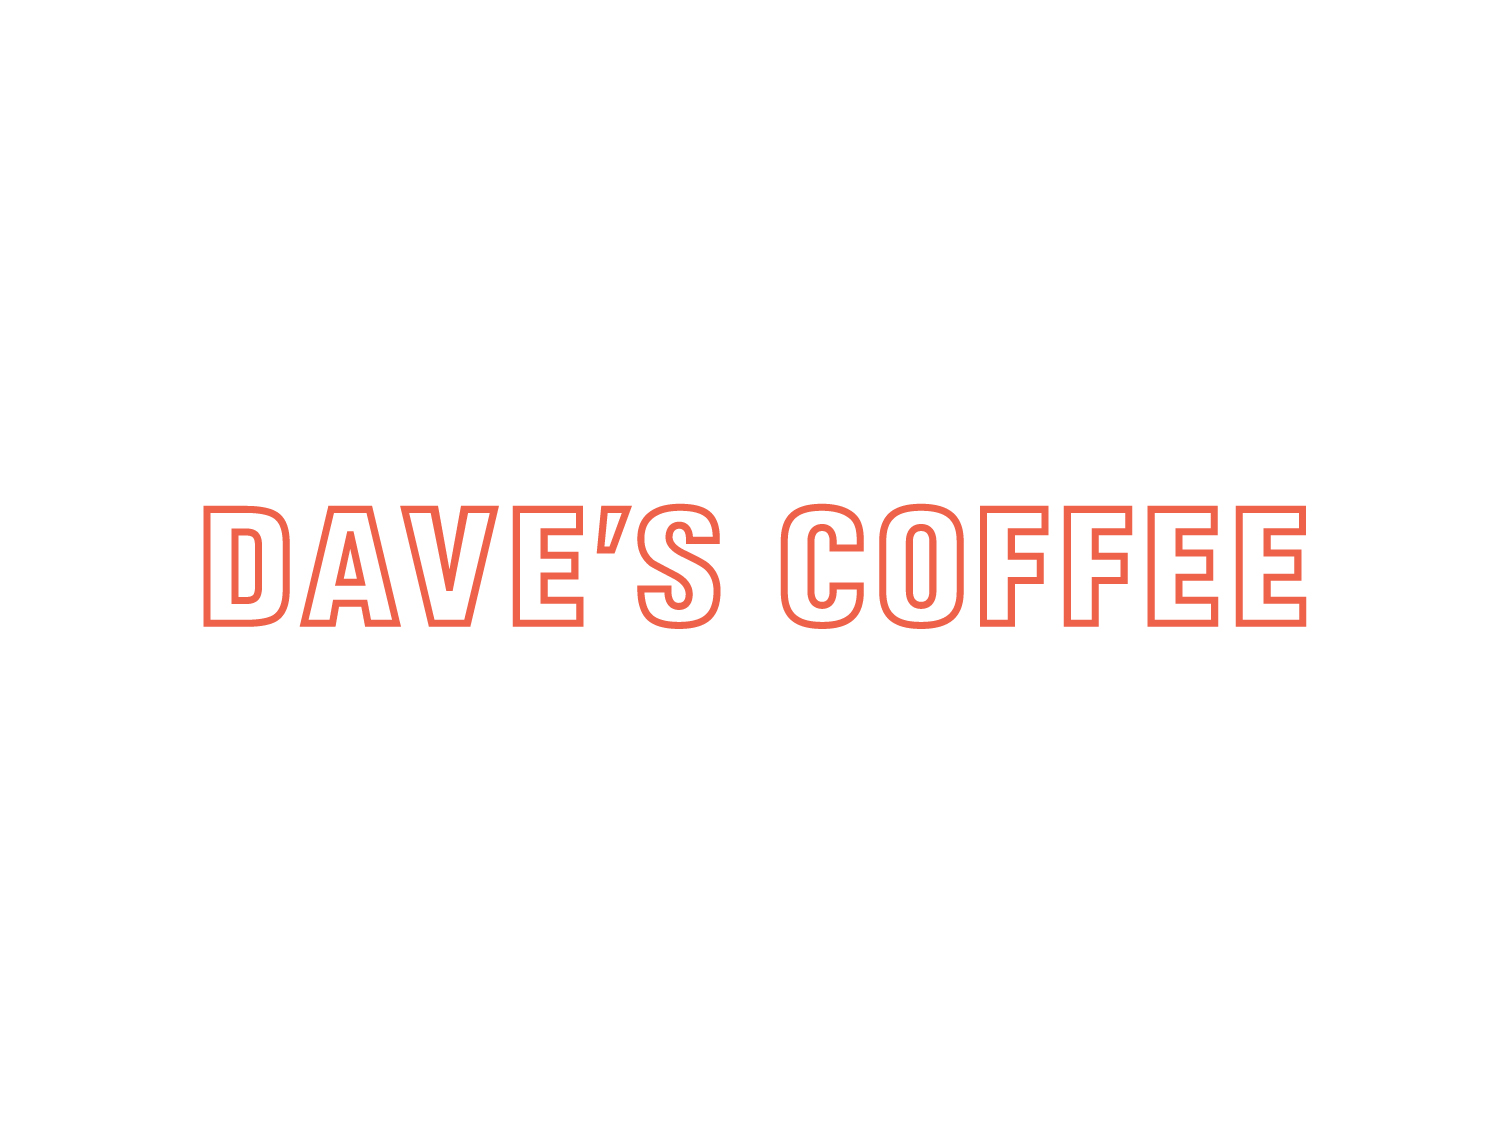 Daves-Coffee-logo-02.jpg